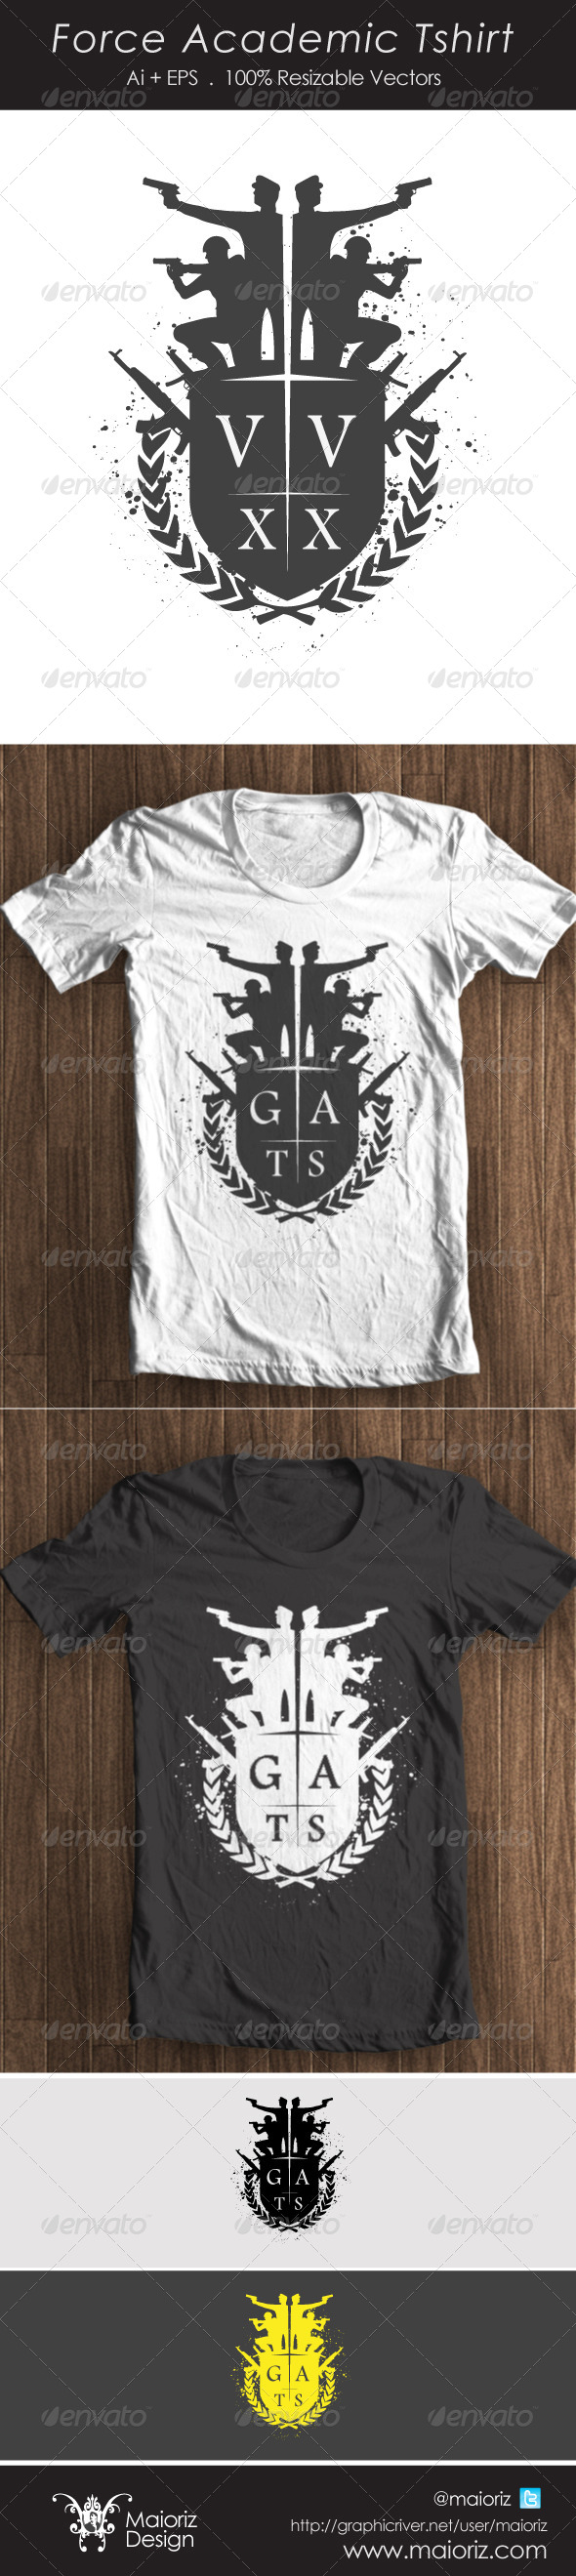 GraphicRiver Acedemic Force Tshirt 4338099